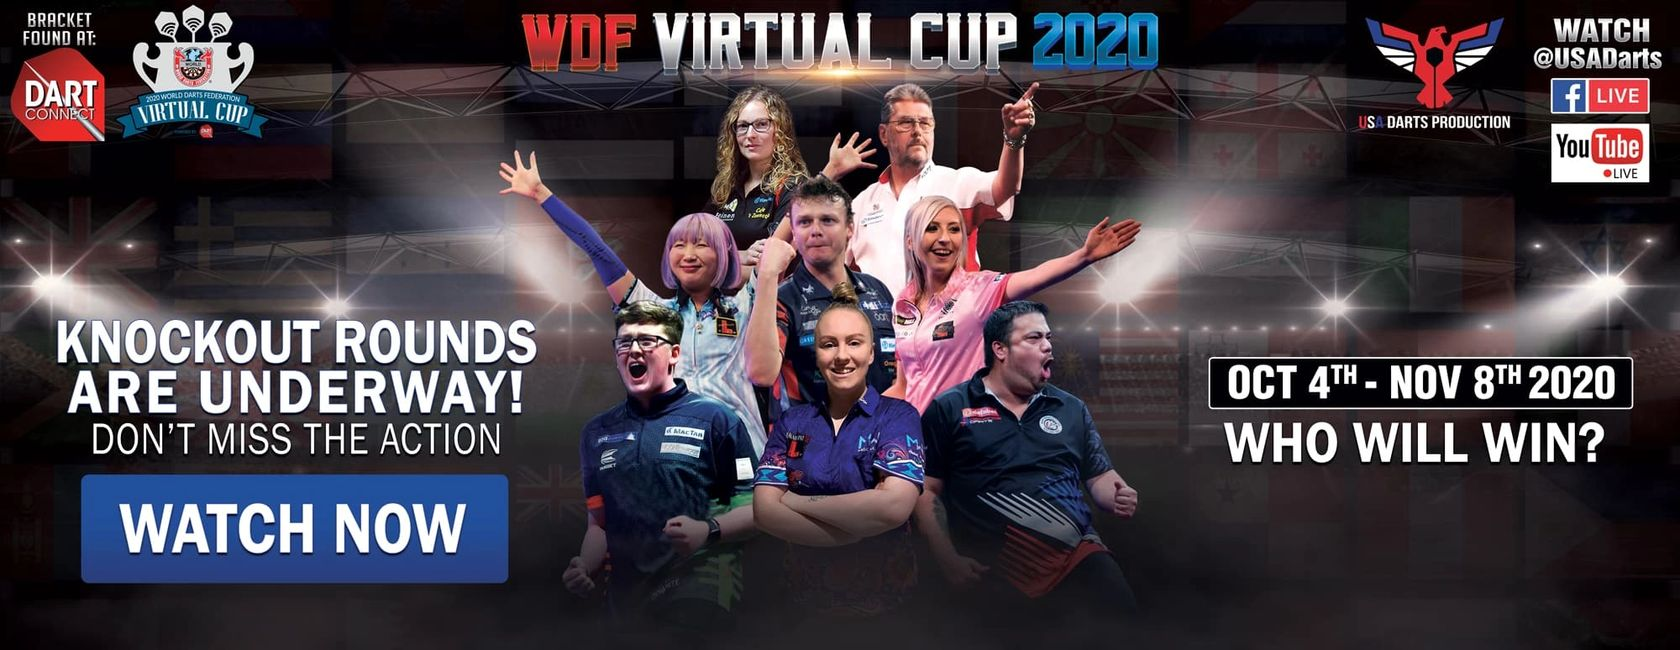 WDF Virtual Cup of darts streamed by USA Darts Production